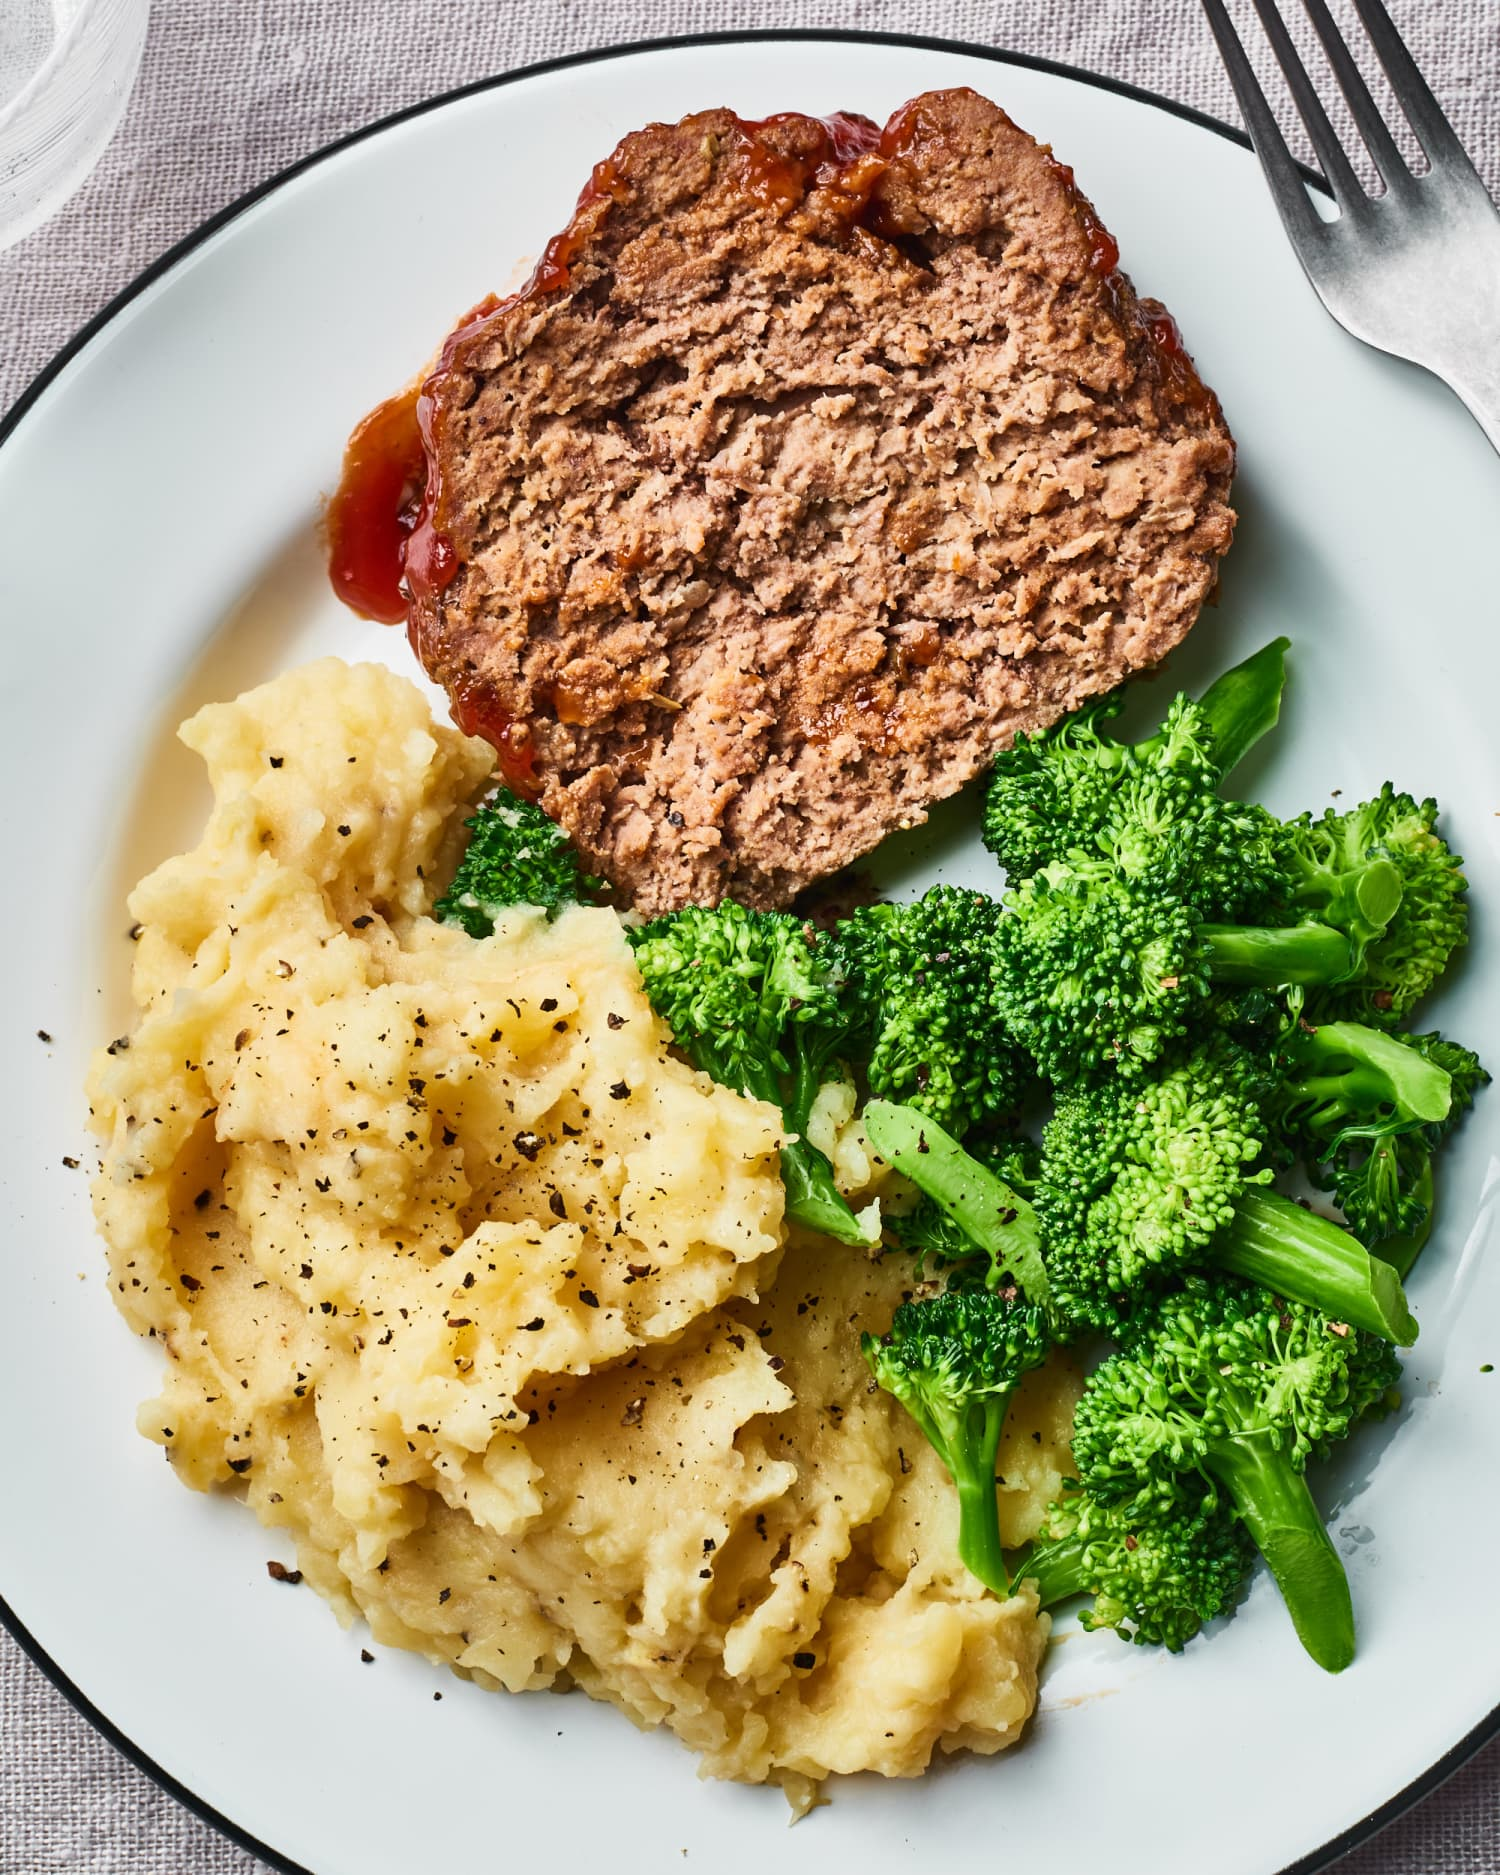 Recipe: Instant Pot Meatloaf and Mashed Potatoes